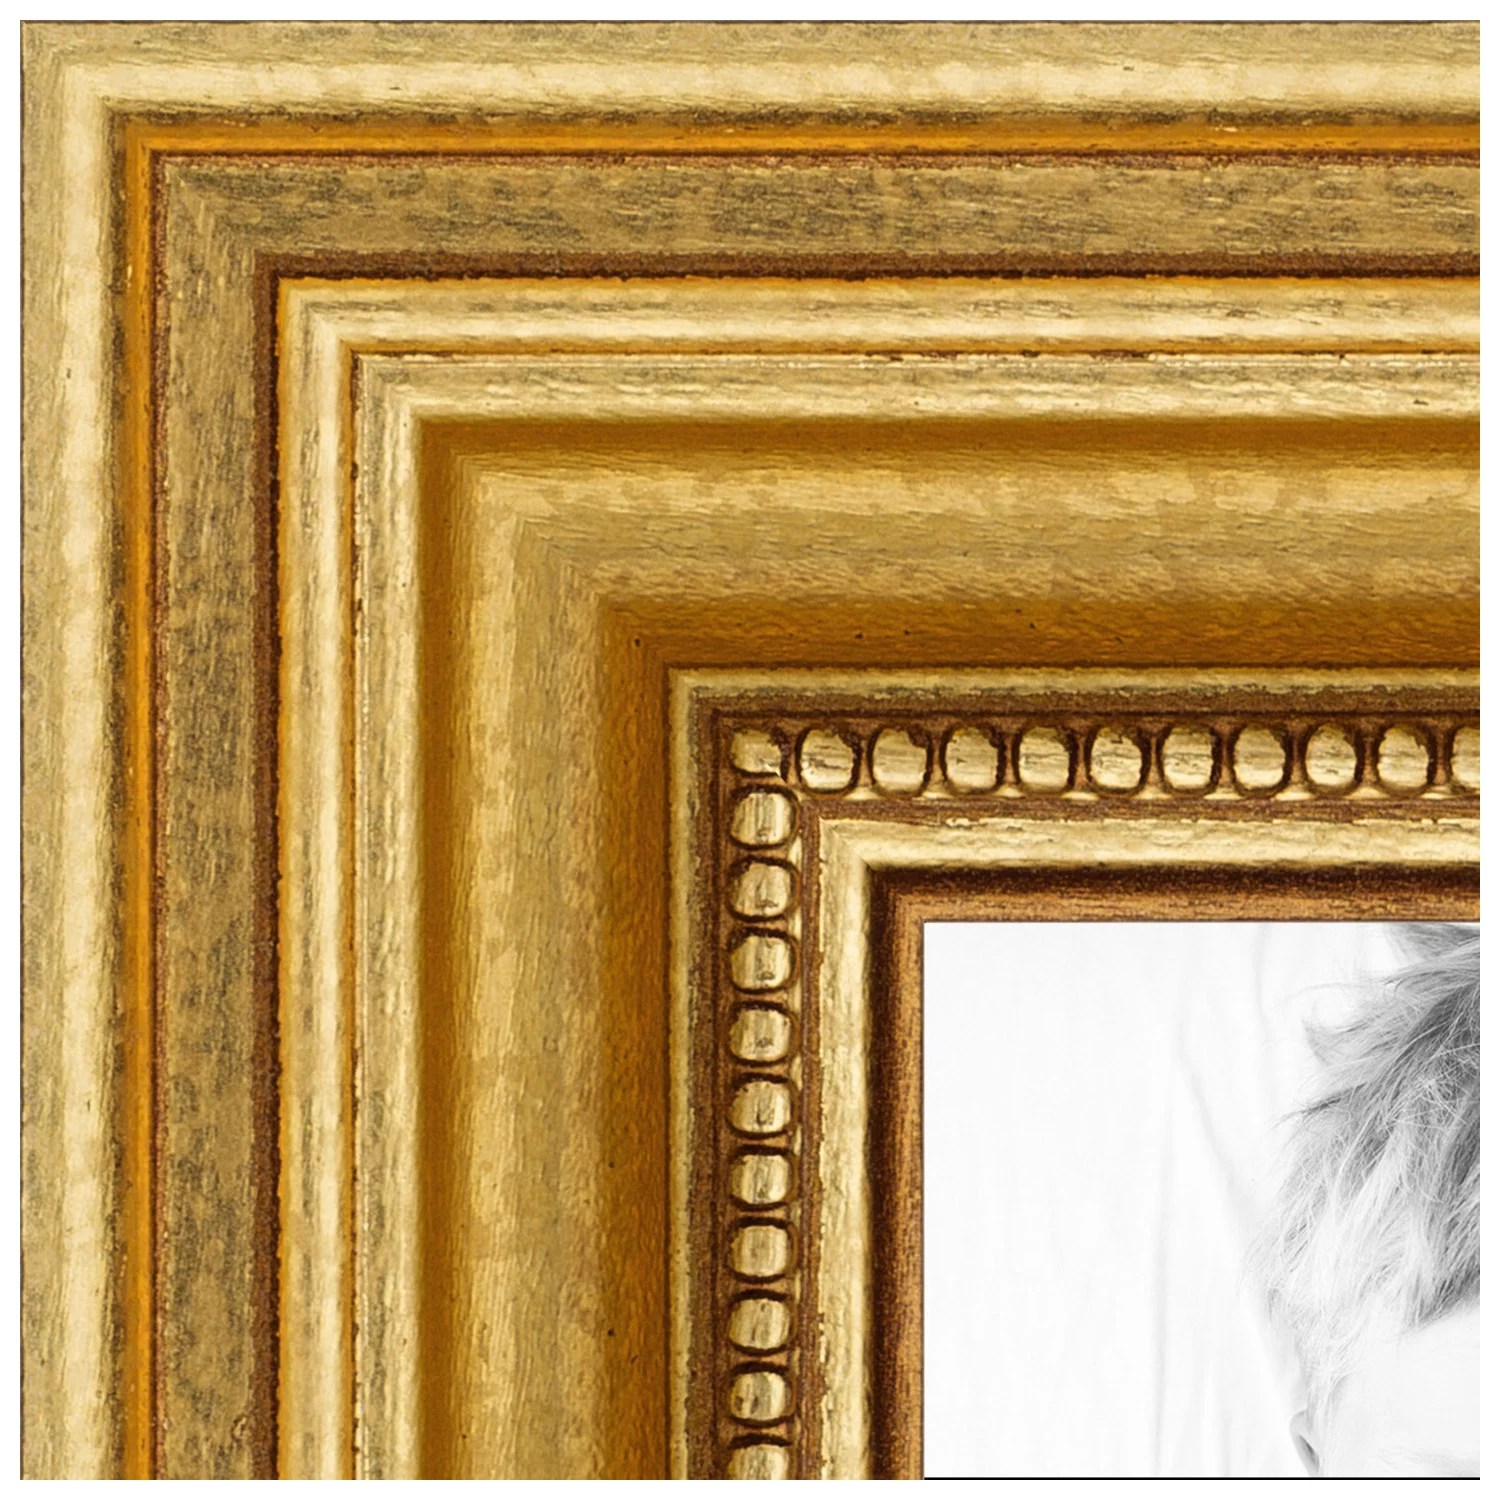 arttoframes 12x18 inch gold picture frame this gold wood poster frame is great for your art or photos comes with 060 plexi glass 4159